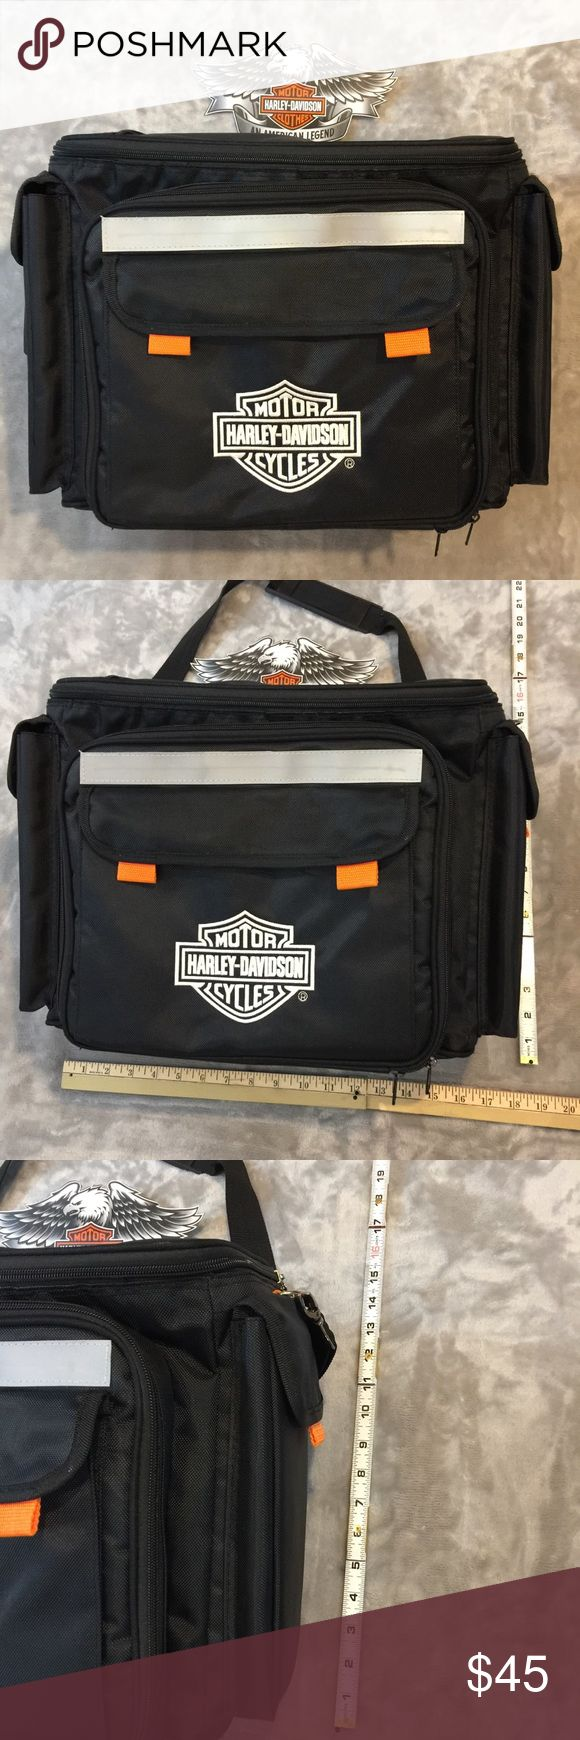 "Harley Davidson Insulated Bag Bag measures 17"" X 13"" X 9"" wide. Perfect size for a picnic lunch. Bag could pass for new, it's in excellent condition. Comes with HD salt and pepper shakers only Harley-Davidson Bags Travel Bags"